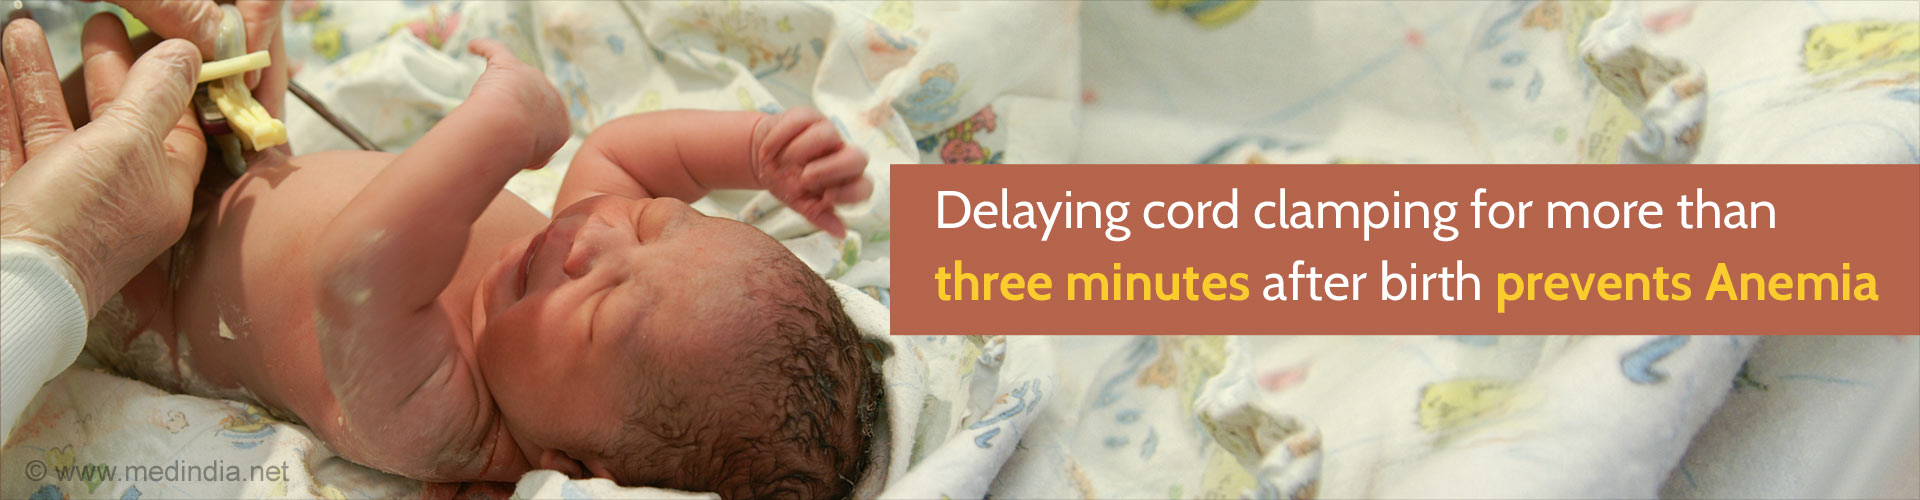 Delayed Clamping After Birth May Prevent Anemia in Children